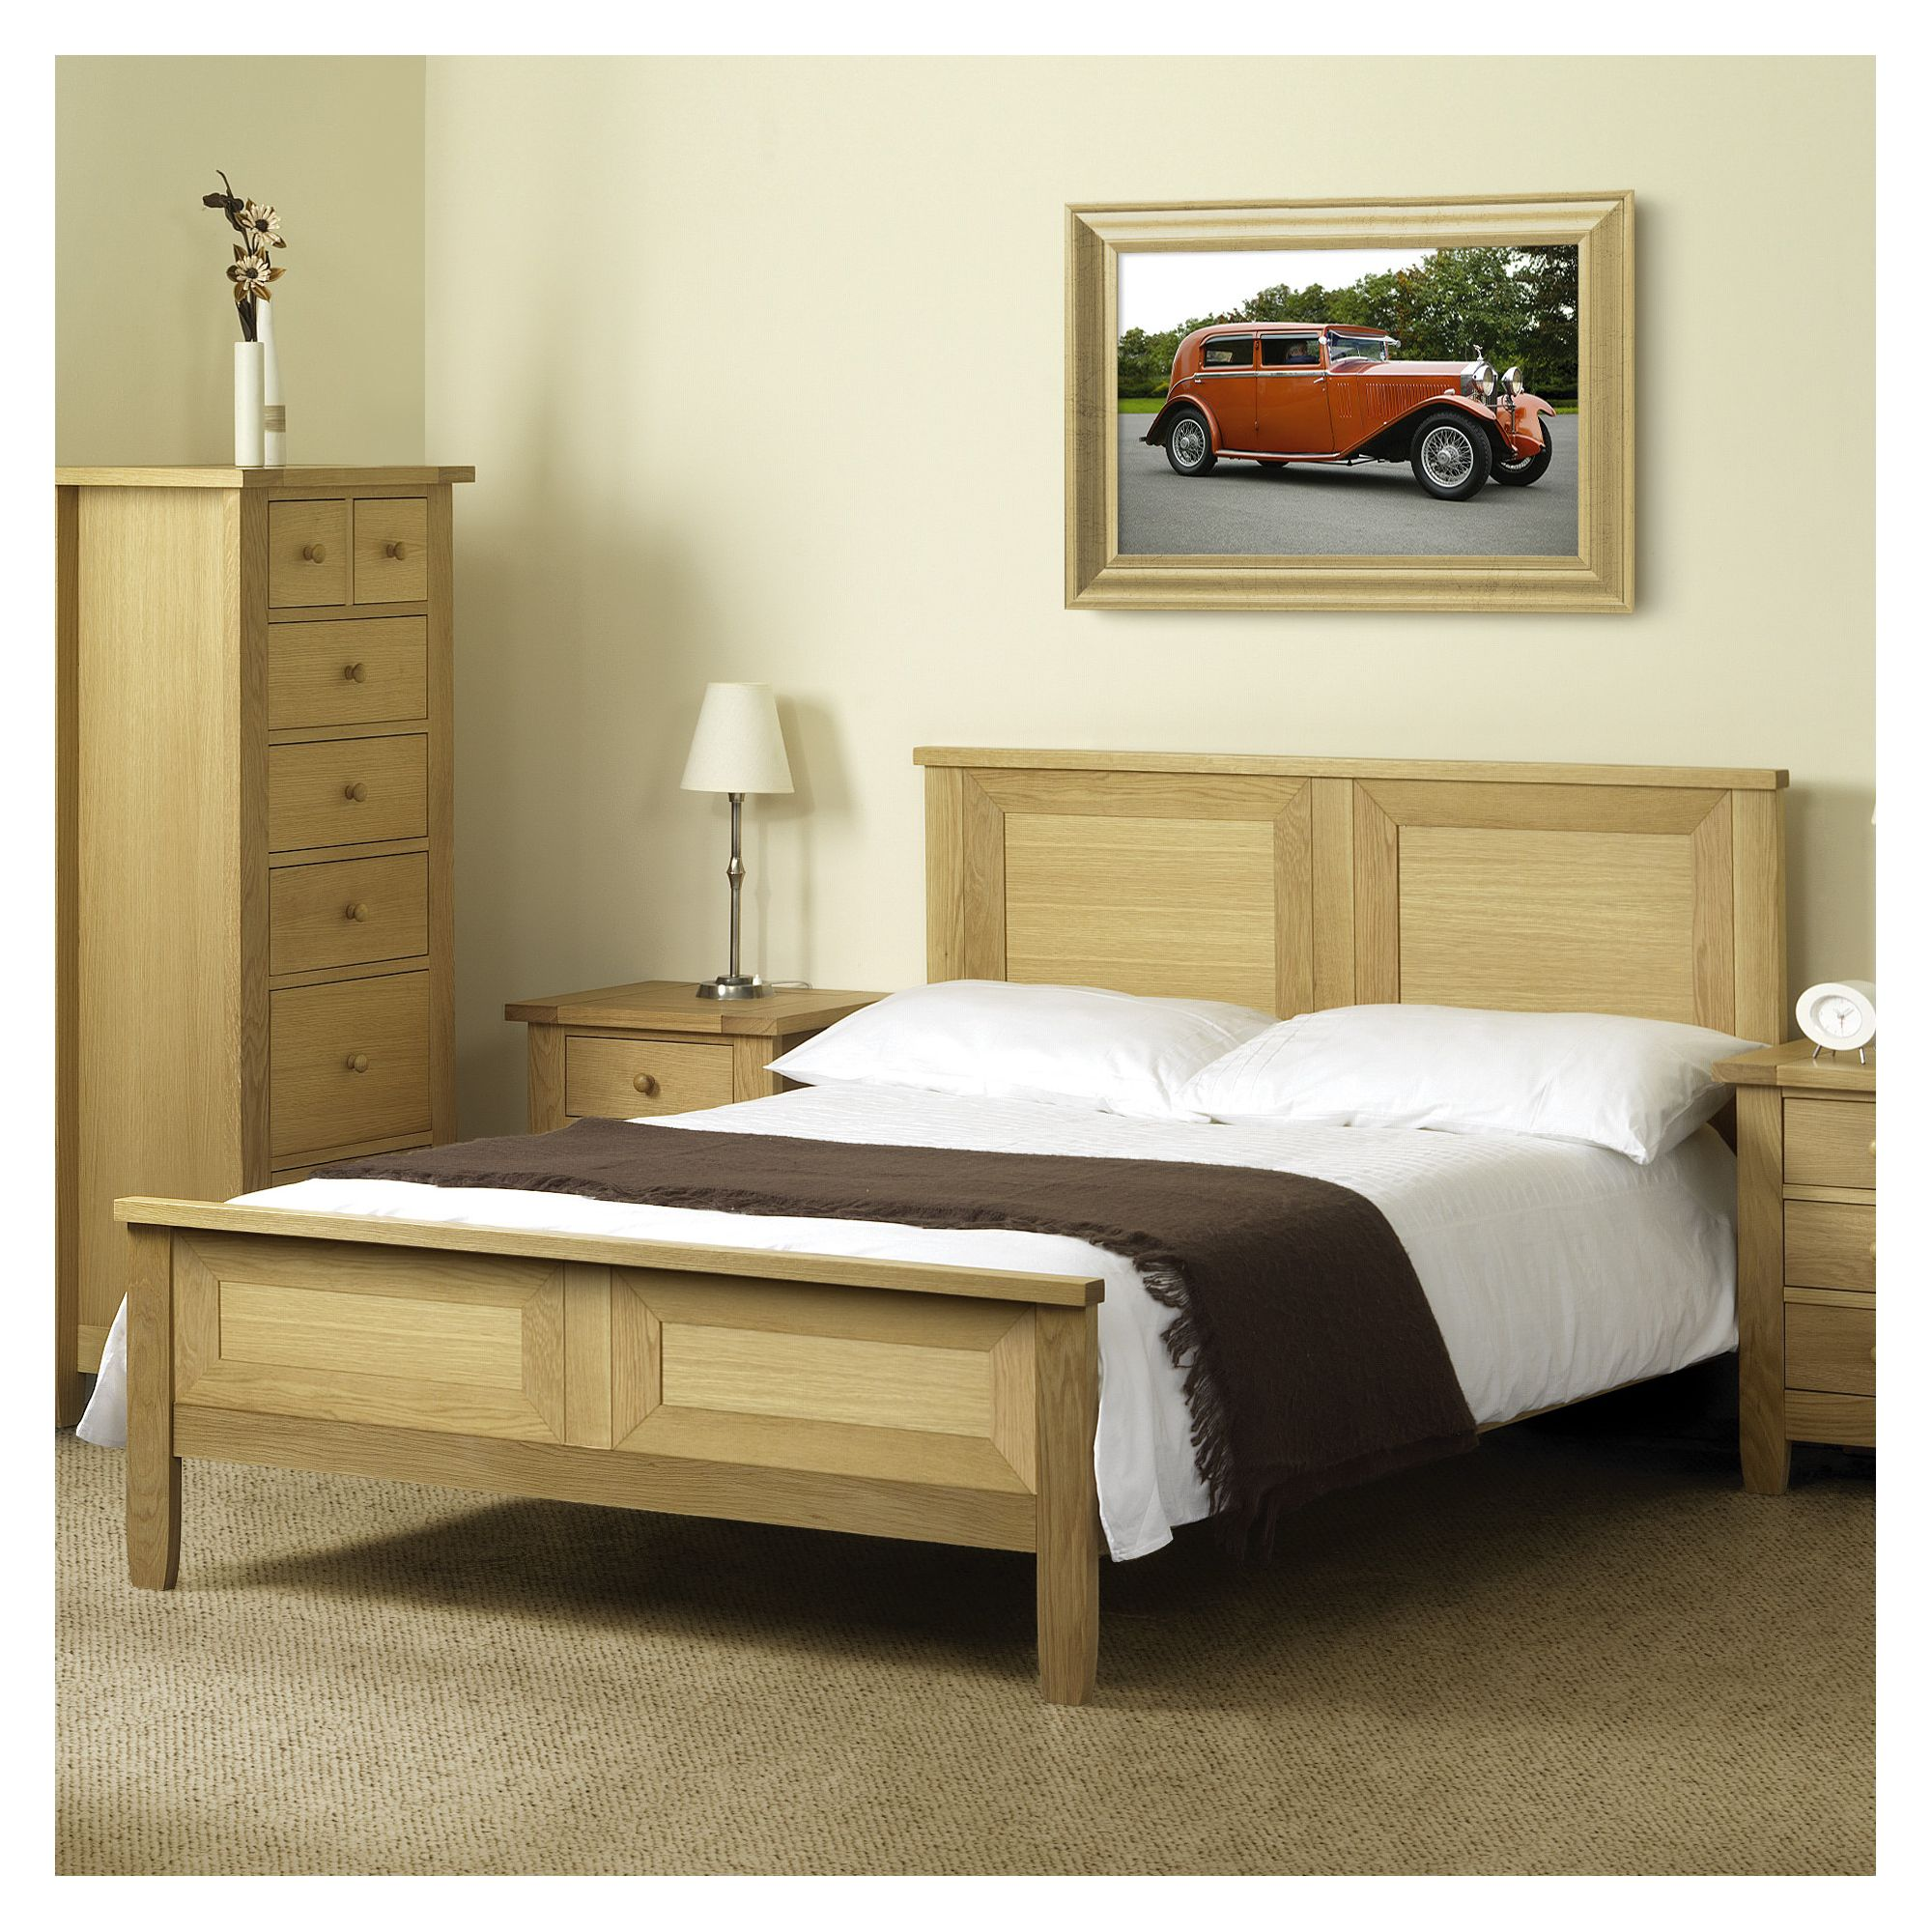 Julian Bowen Lyndhurst Bed Frame - Kingsize at Tesco Direct